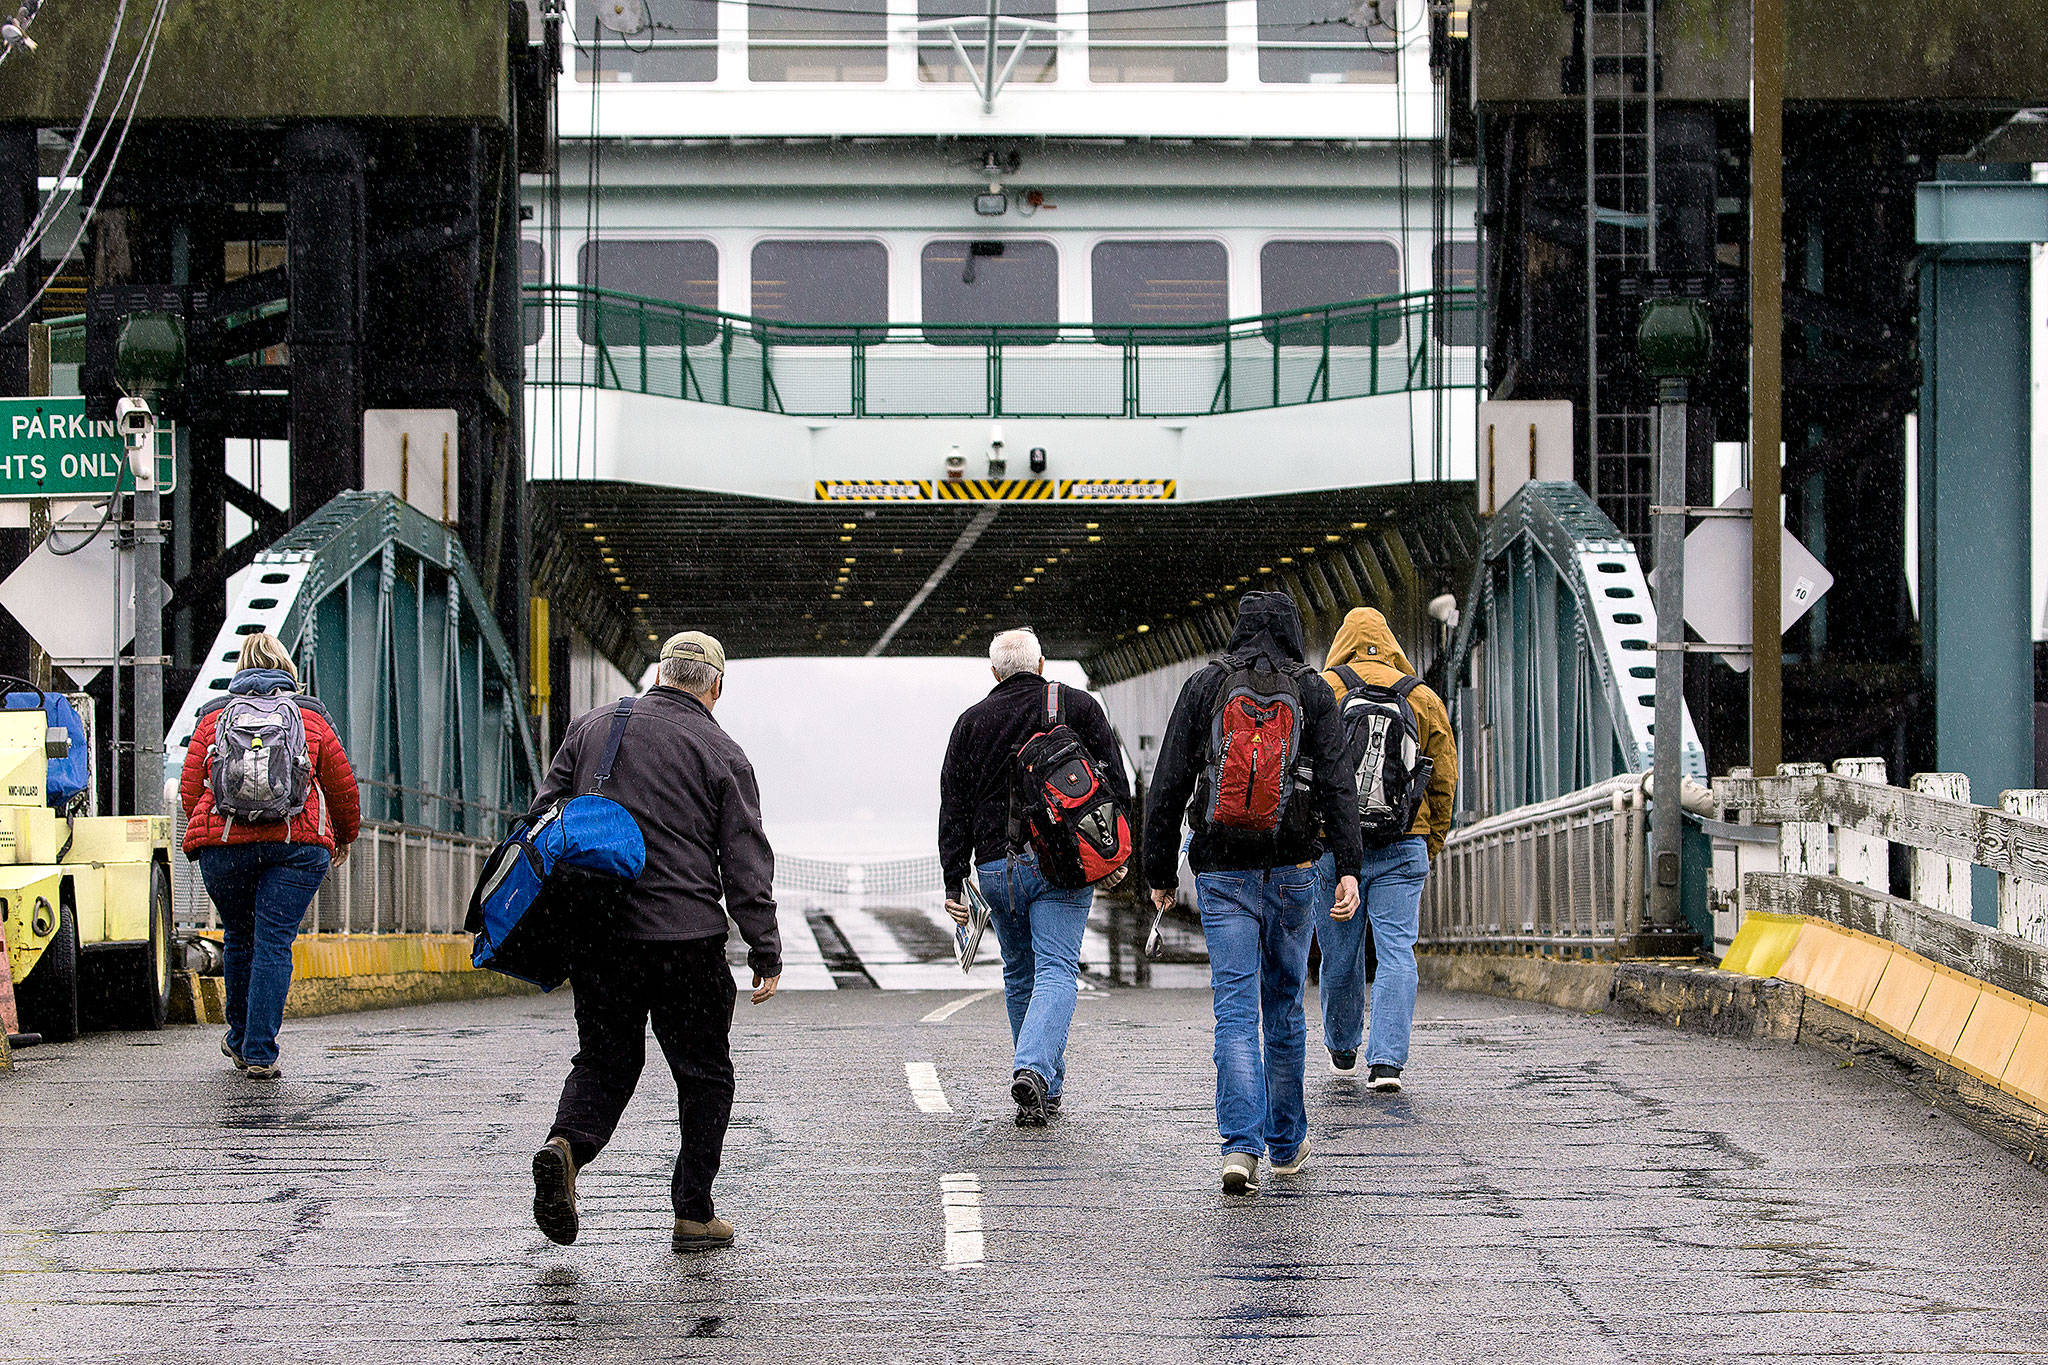 Pedestrians walk onto the Washington ferry Tokitae after cars are loaded for the Mukilteo to Clinton route on Monday. An overhead loading for pedestrians will be included in the city's new $134.7 million ferry terminal. (Andy Bronson / The Herald)